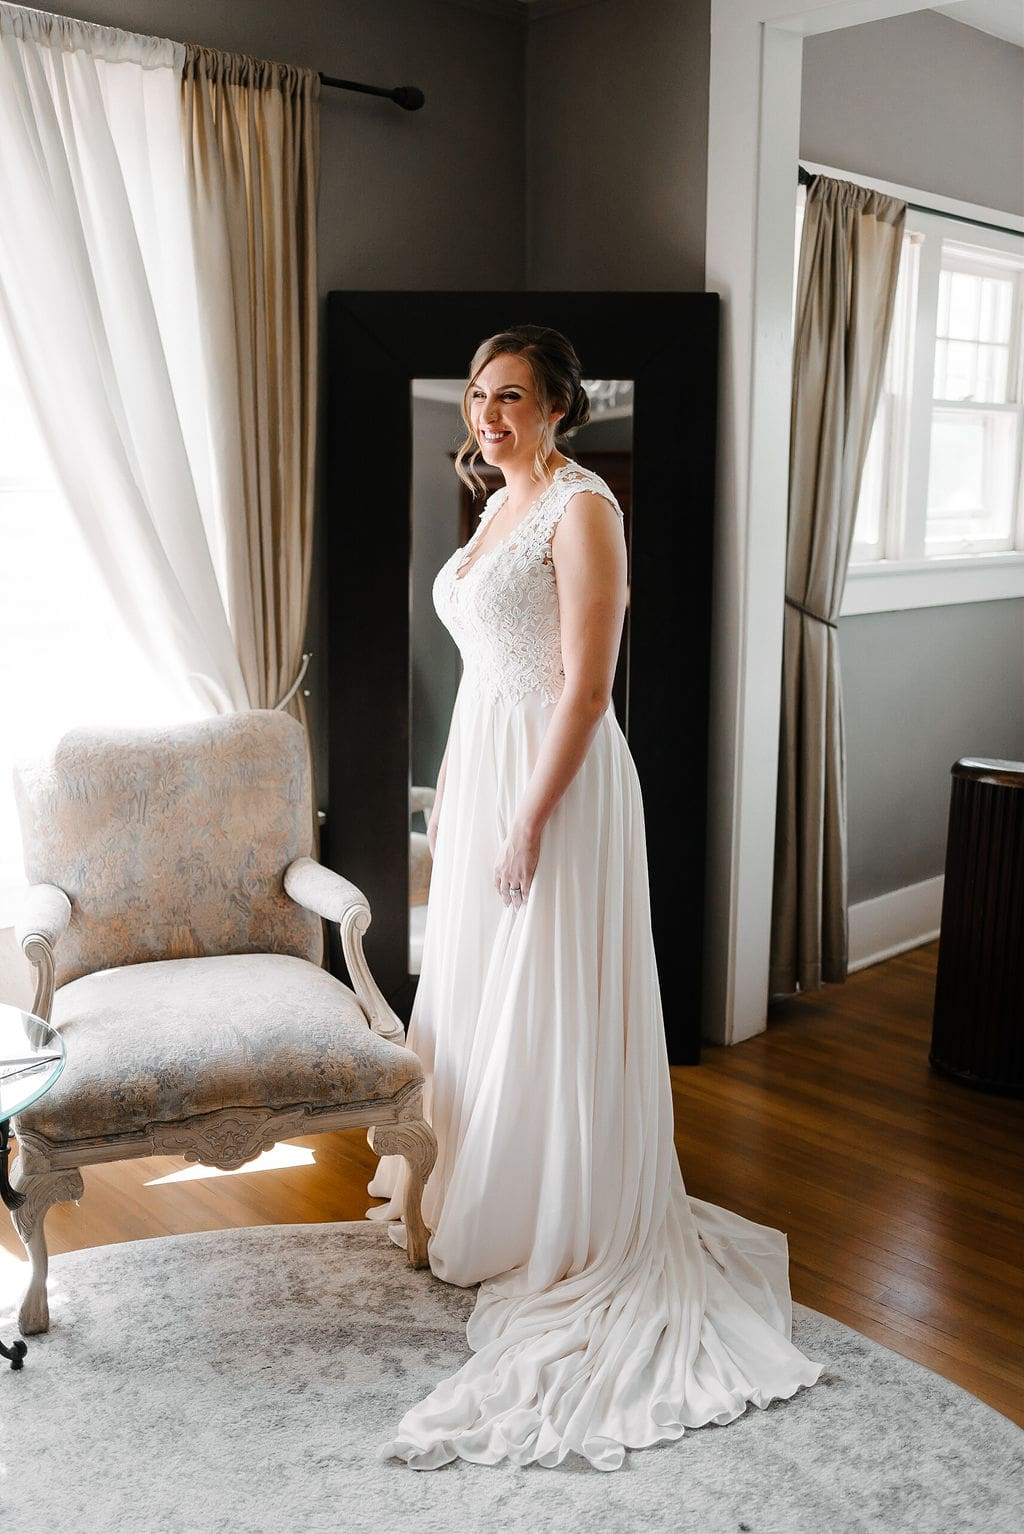 Classy Bride Portrait in Bridal Suite